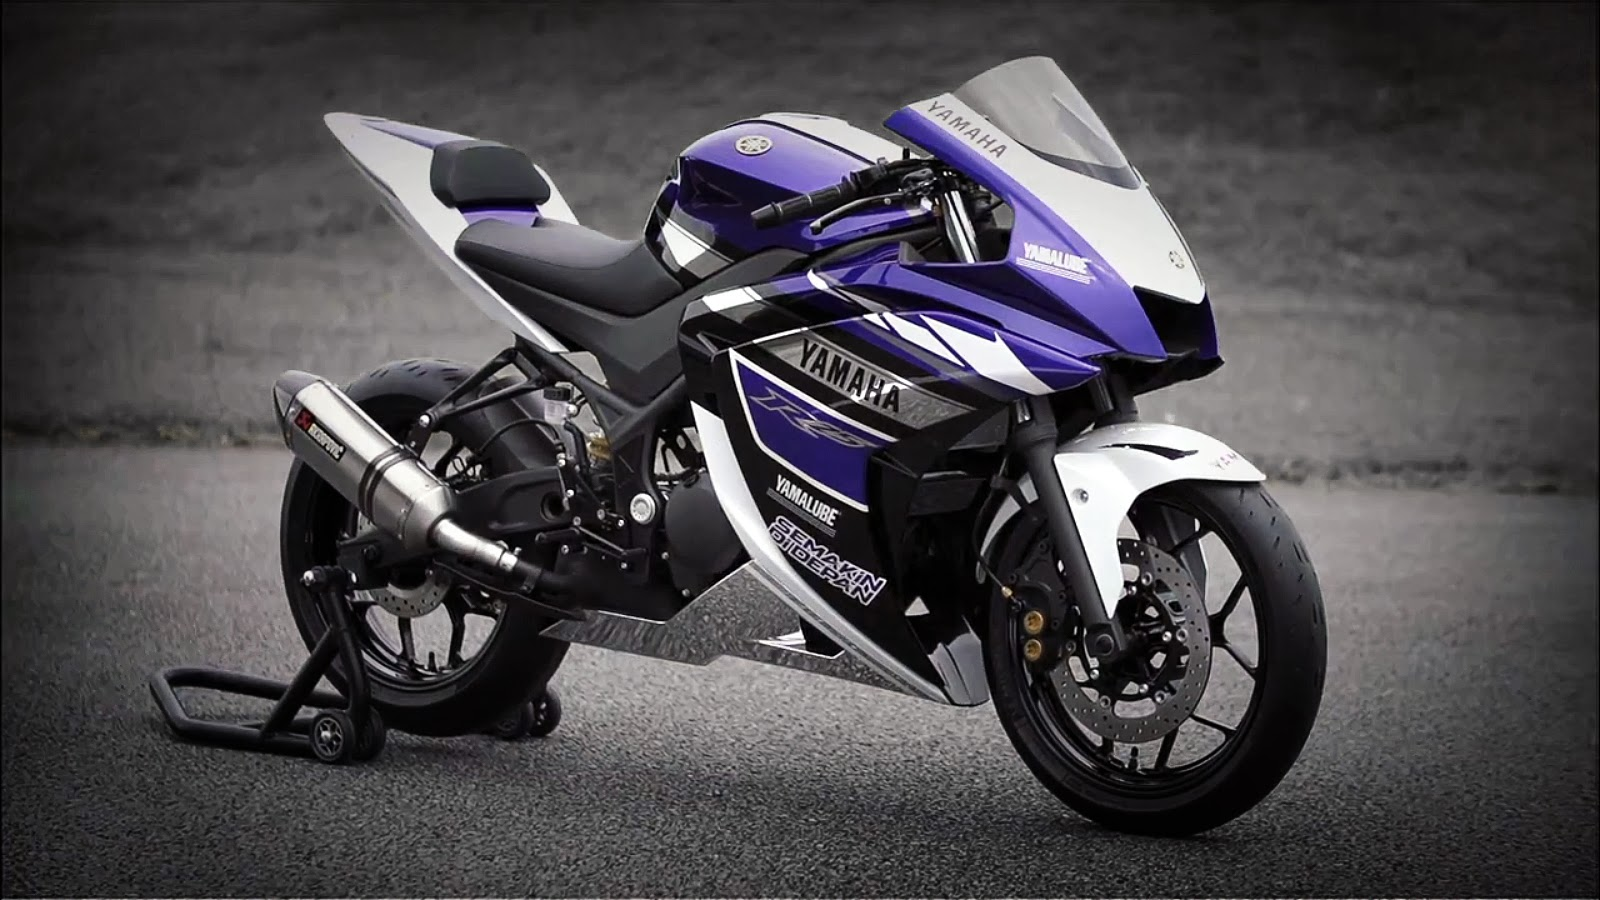 2018 Yamaha YZF-R15 V0 first ride review